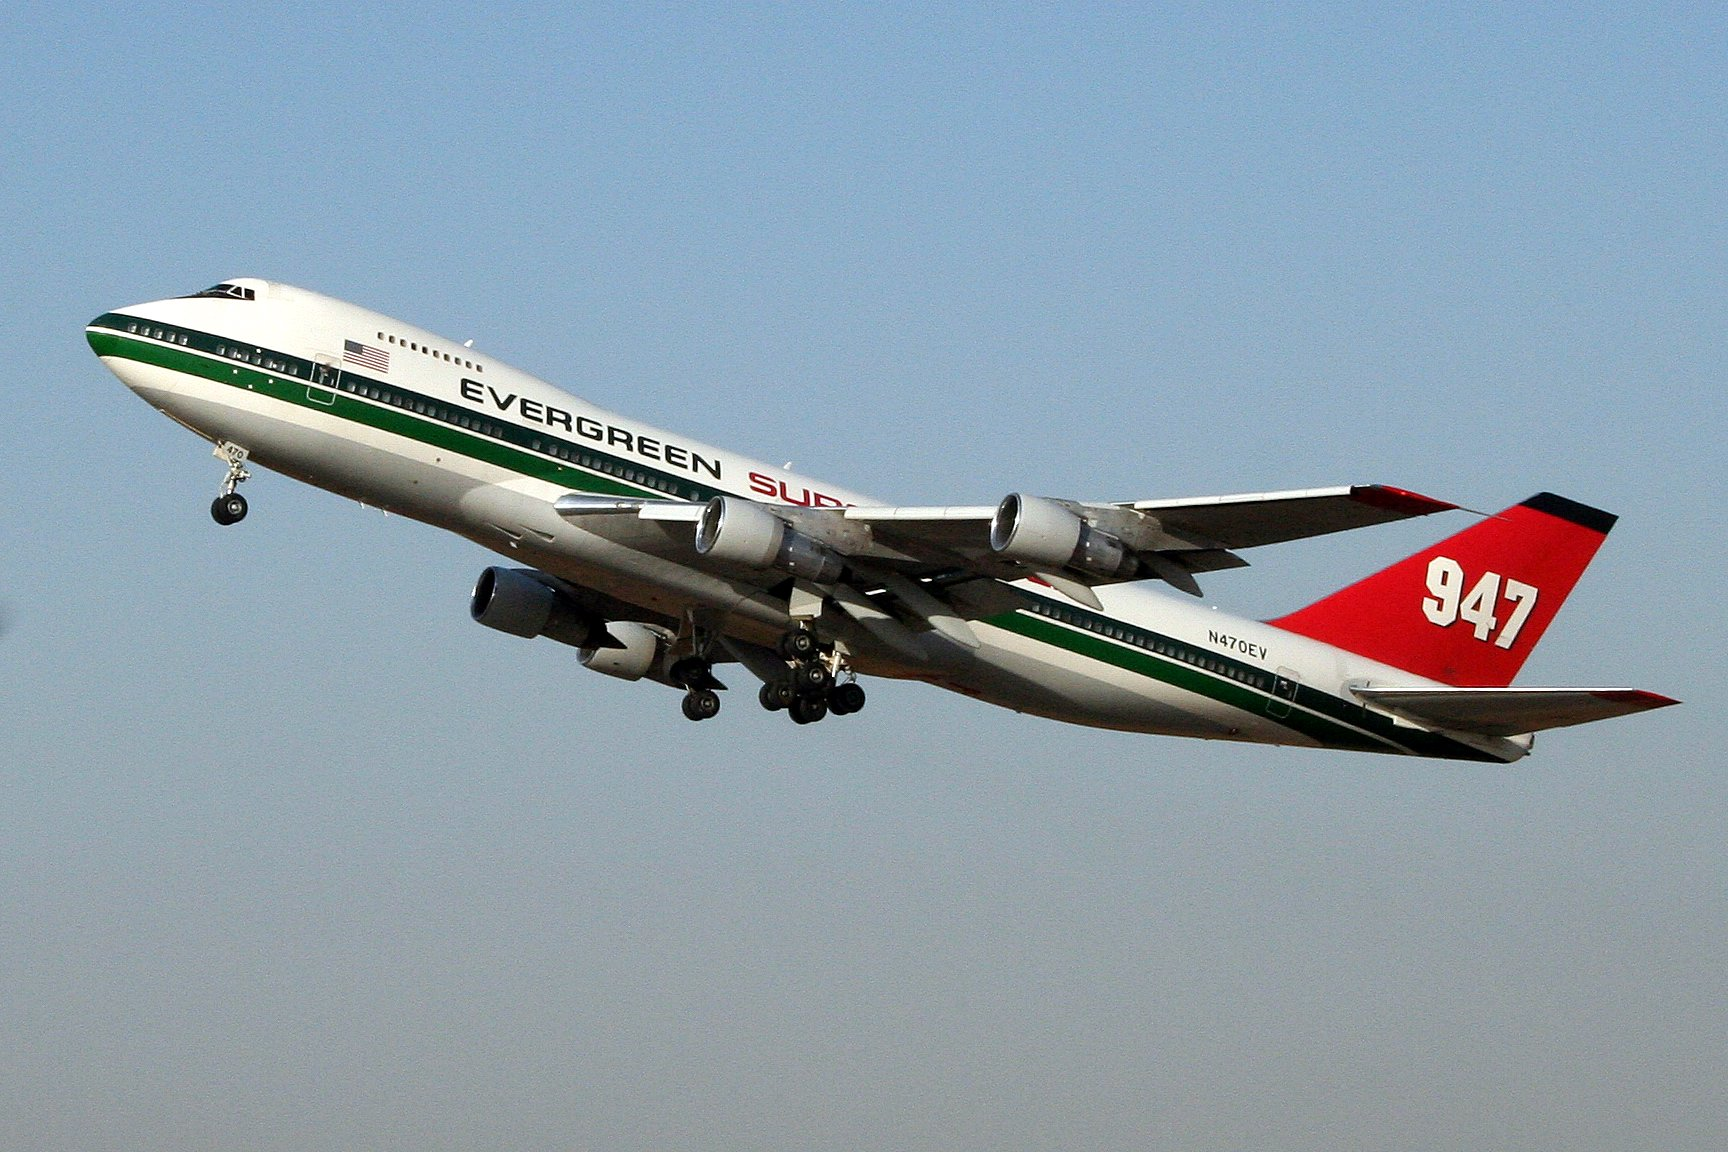 File:Evergreen Supertanker 947 N470EV take-off from Ben Gurion 20071116.jpg